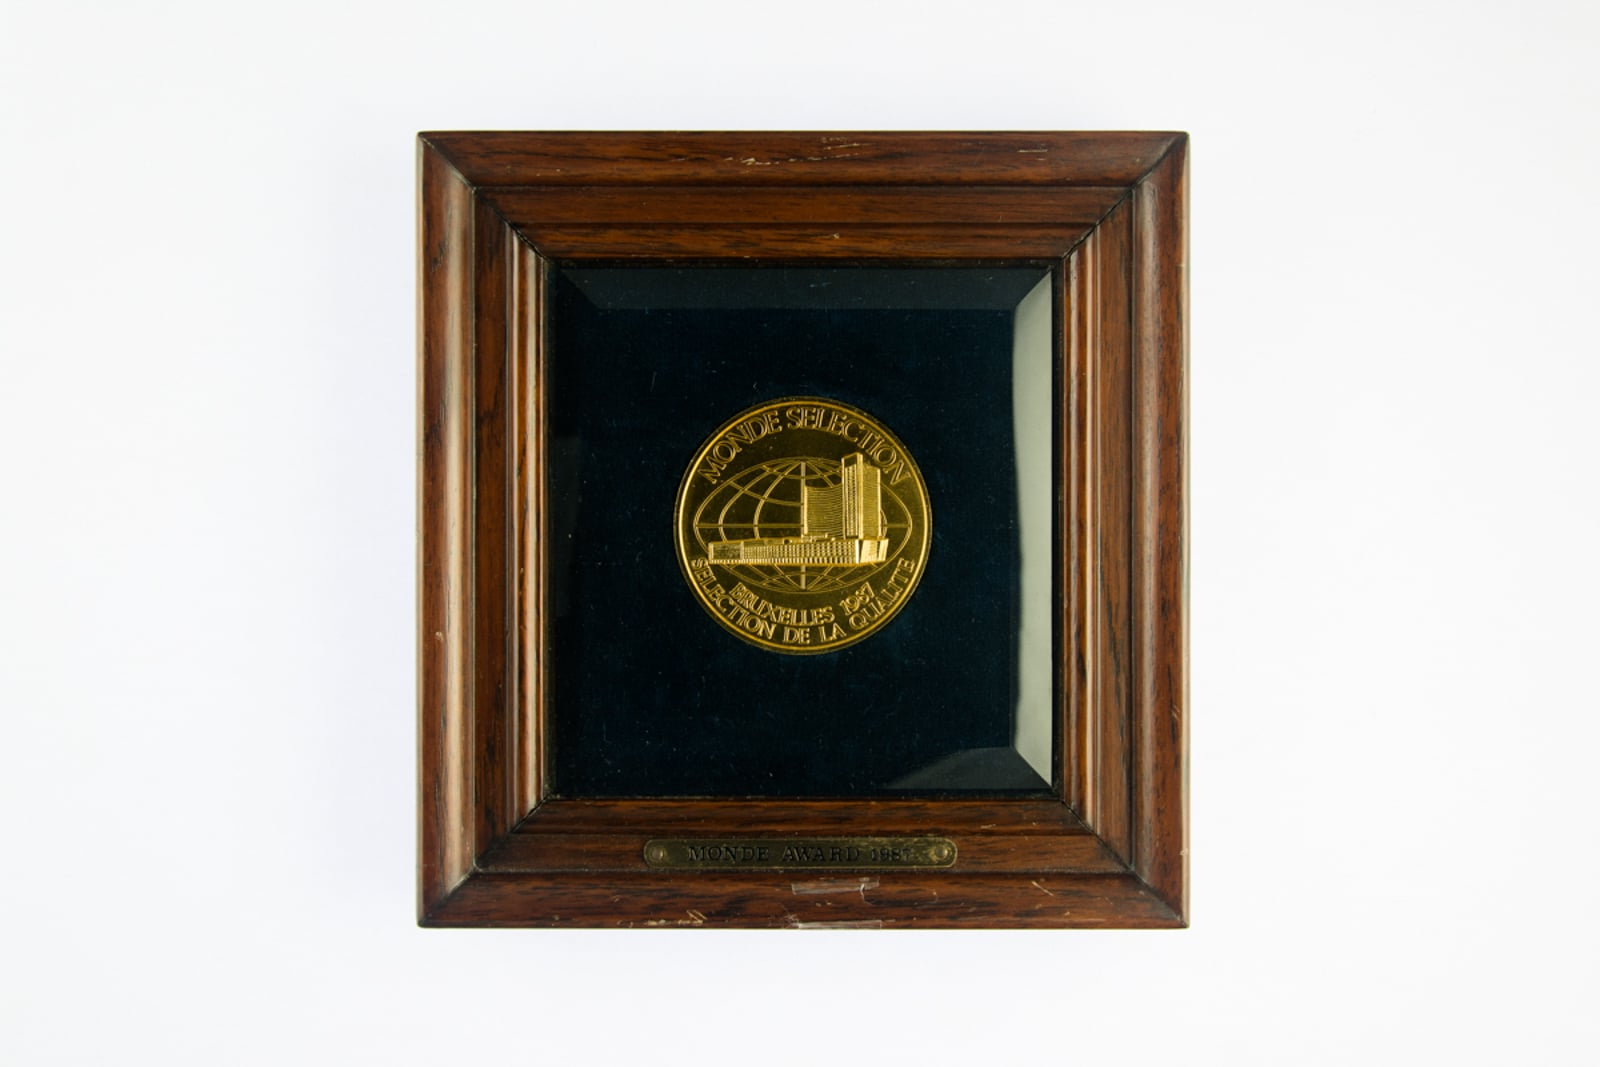 Monde Selection Bruxelles, Gold Medal 1987